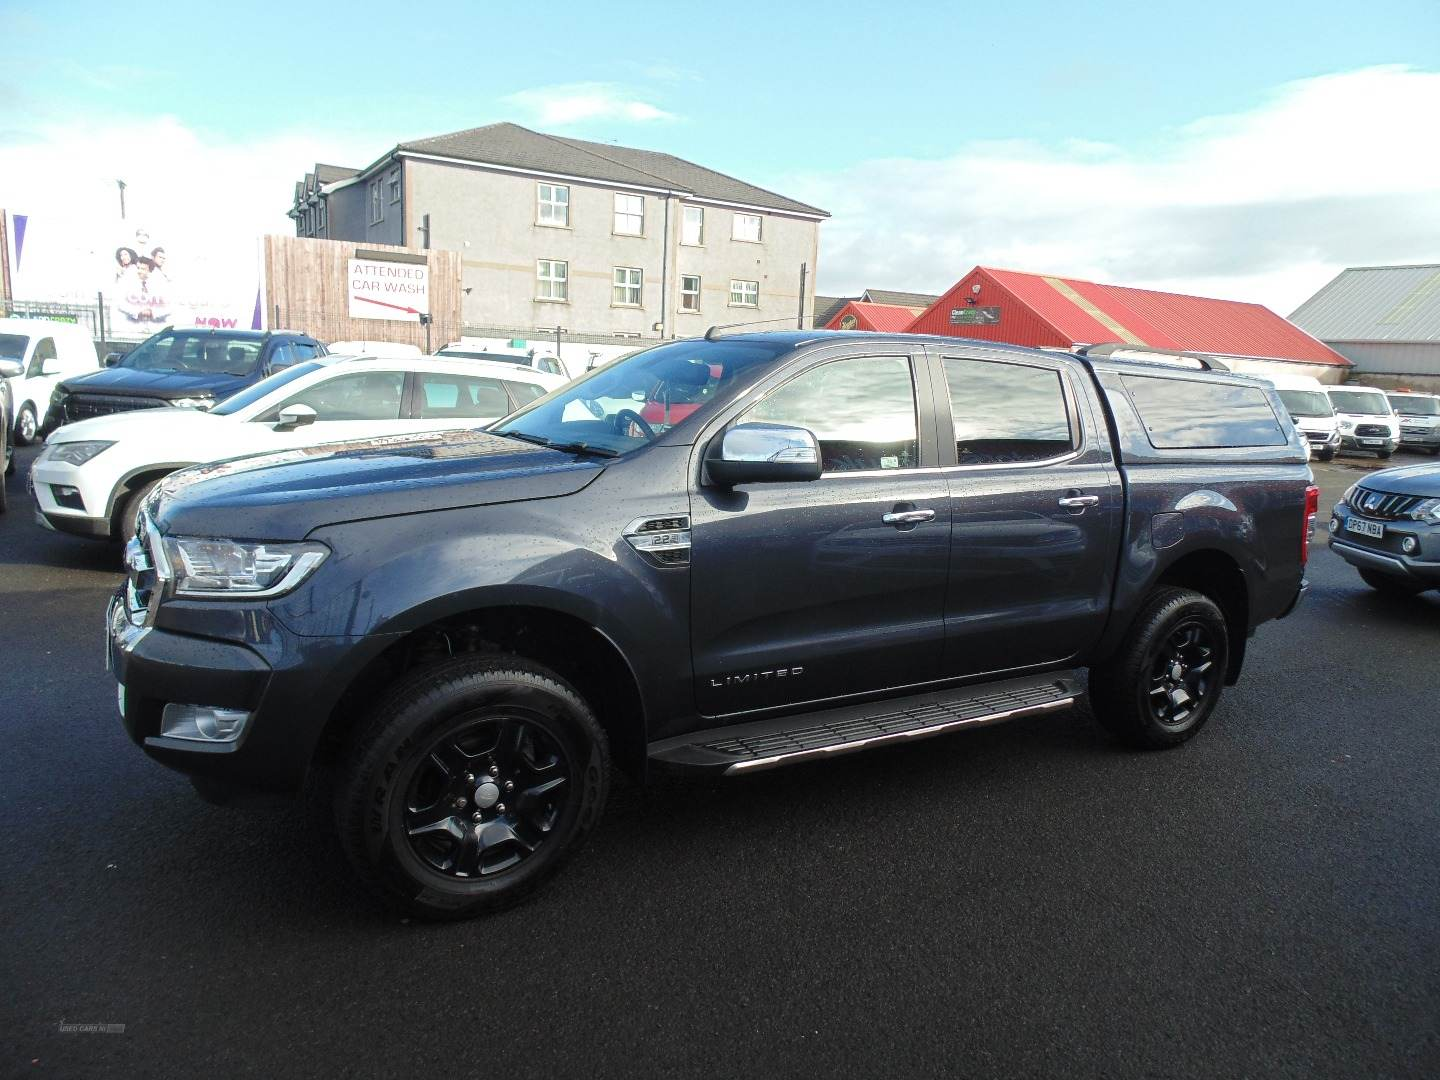 2019 Ford Ranger Pick  Up  Double  Cab  Limited  2  2.2  TDCi  Auto Diesel Automatic  – Sam Creith Motors Ballymoney